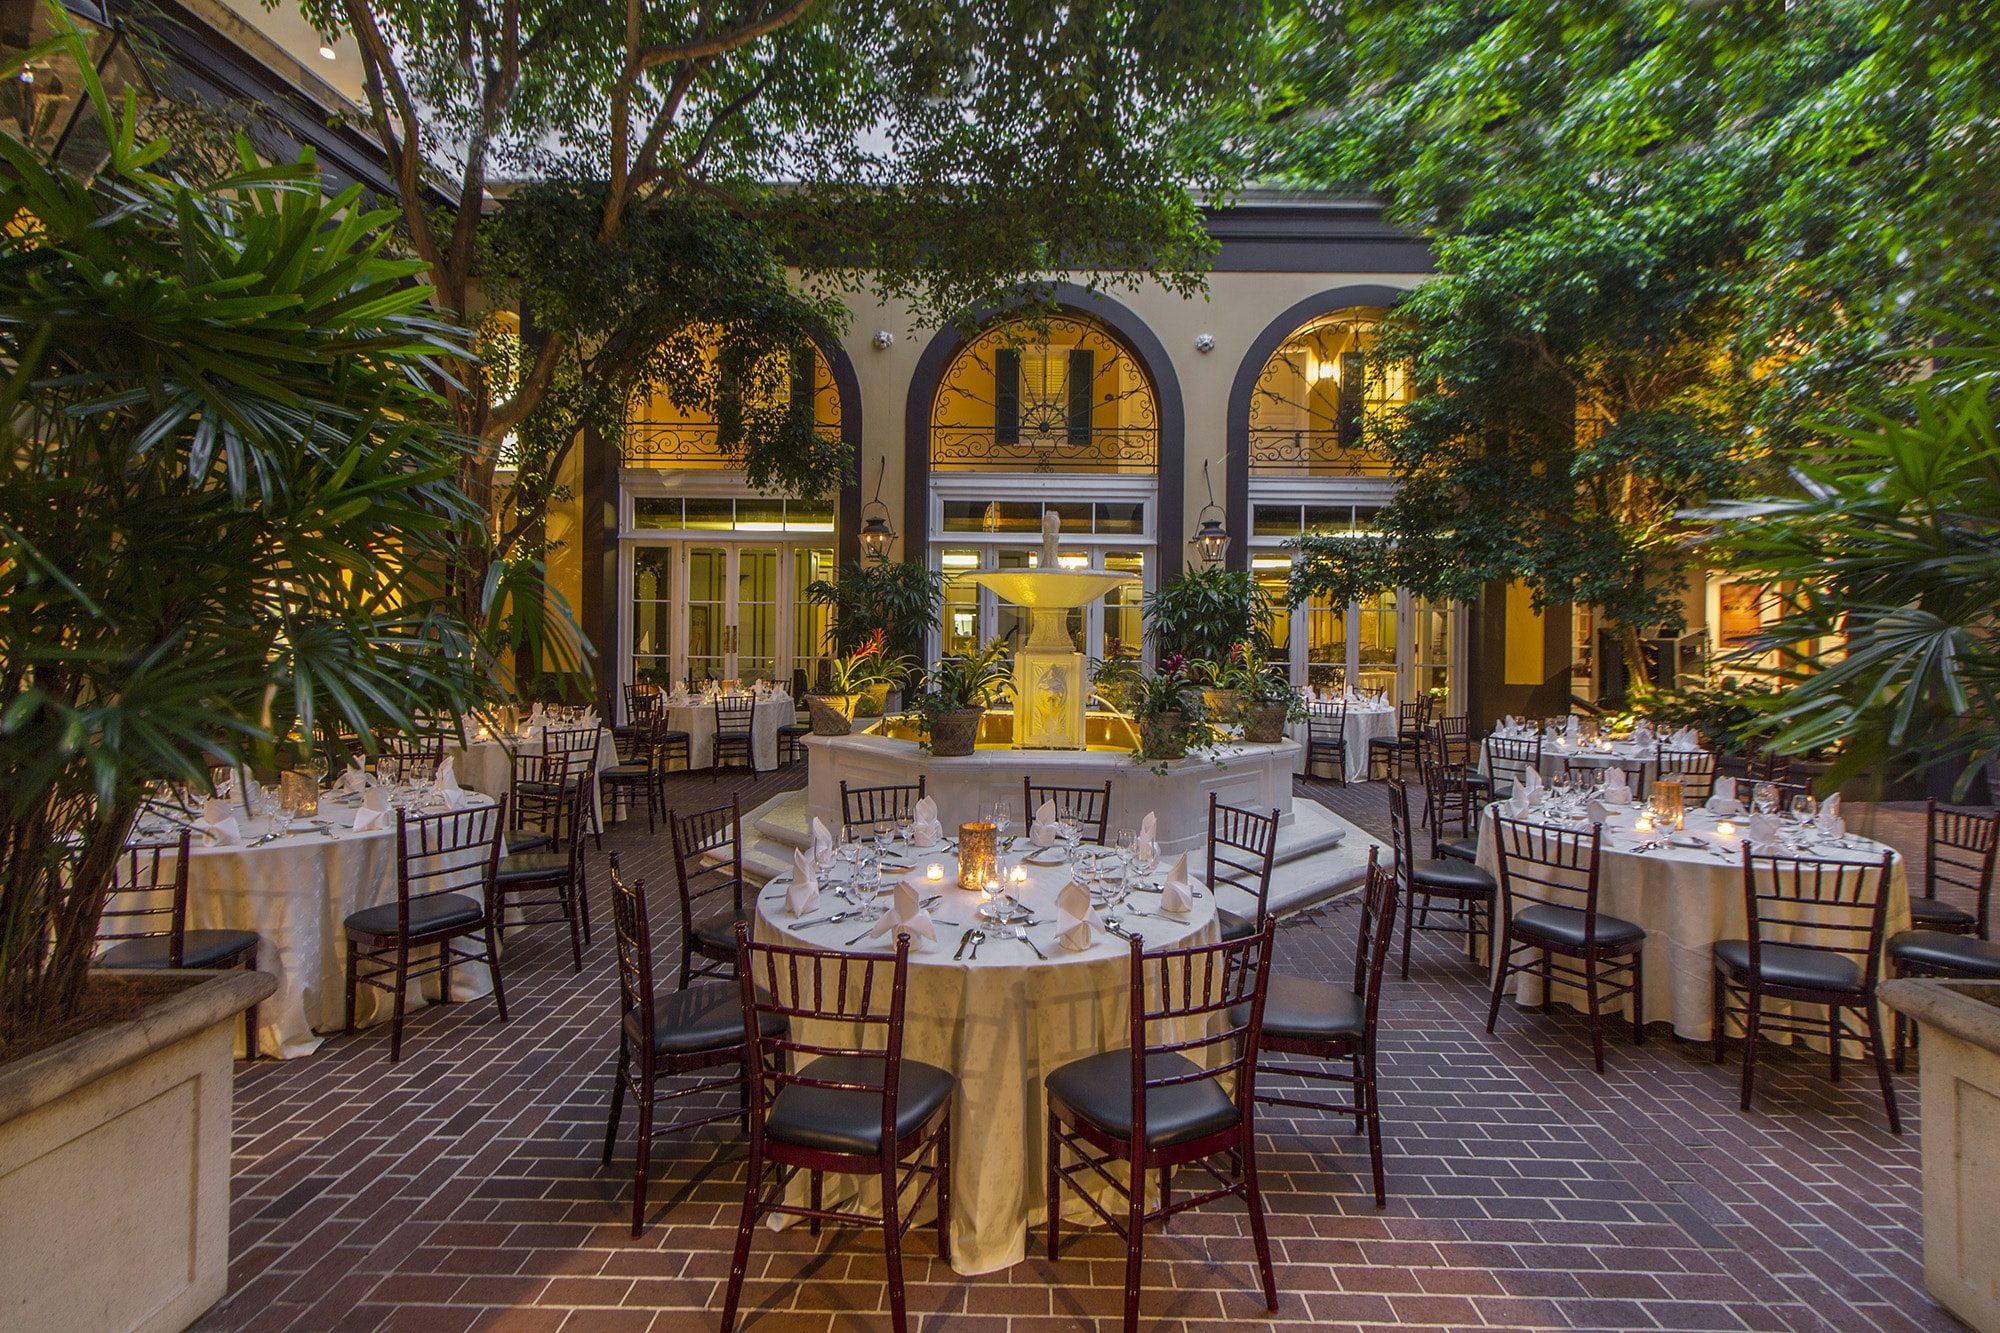 The Best Boutique Hotels In New Orleans\' French Quarter